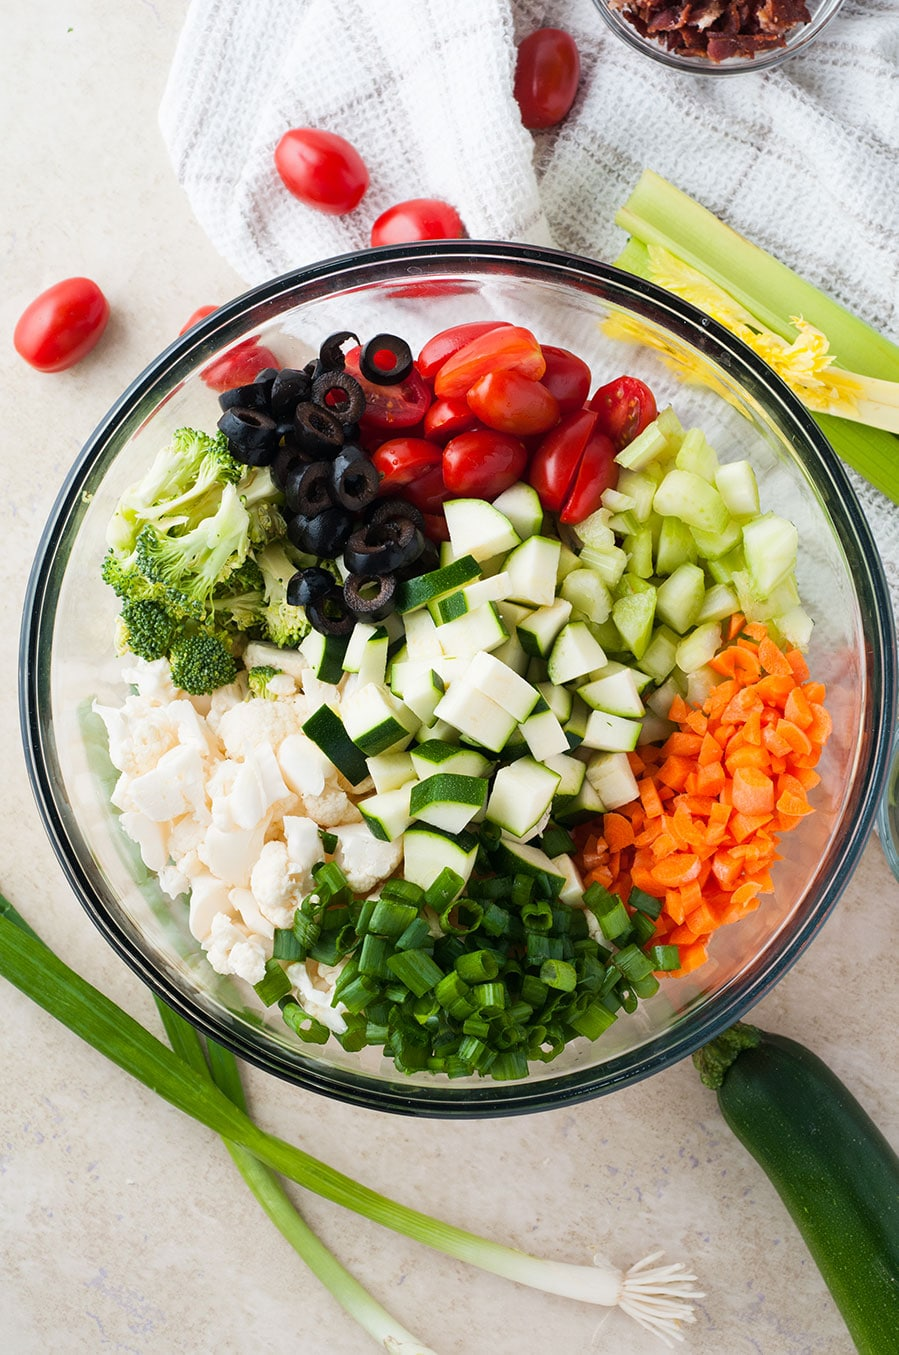 a large bowl filled with carrots, zucchini, broccoli, black olives, tomatoes, and cauliflower.